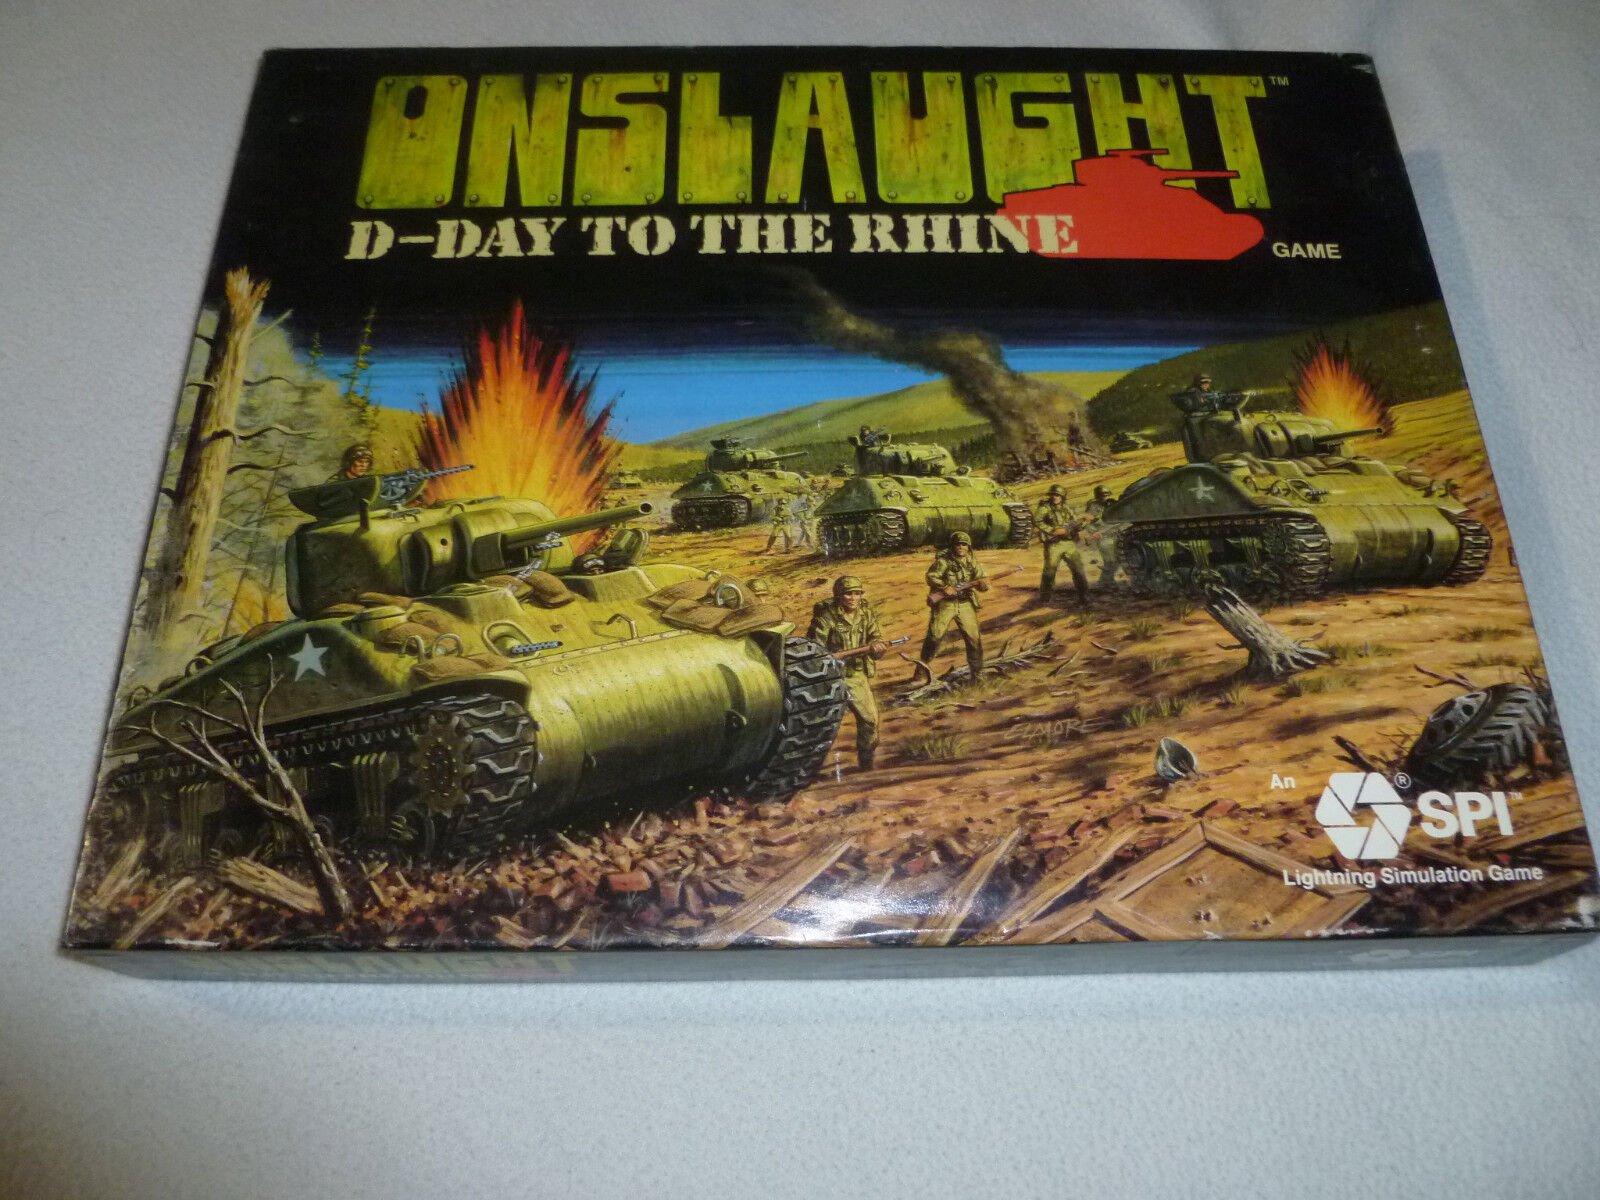 ONSLAUGHT D-DAY TO THE RHINE BOARD GAME SPI 1987 VINTAGE COMPLETE IN BOX 3021